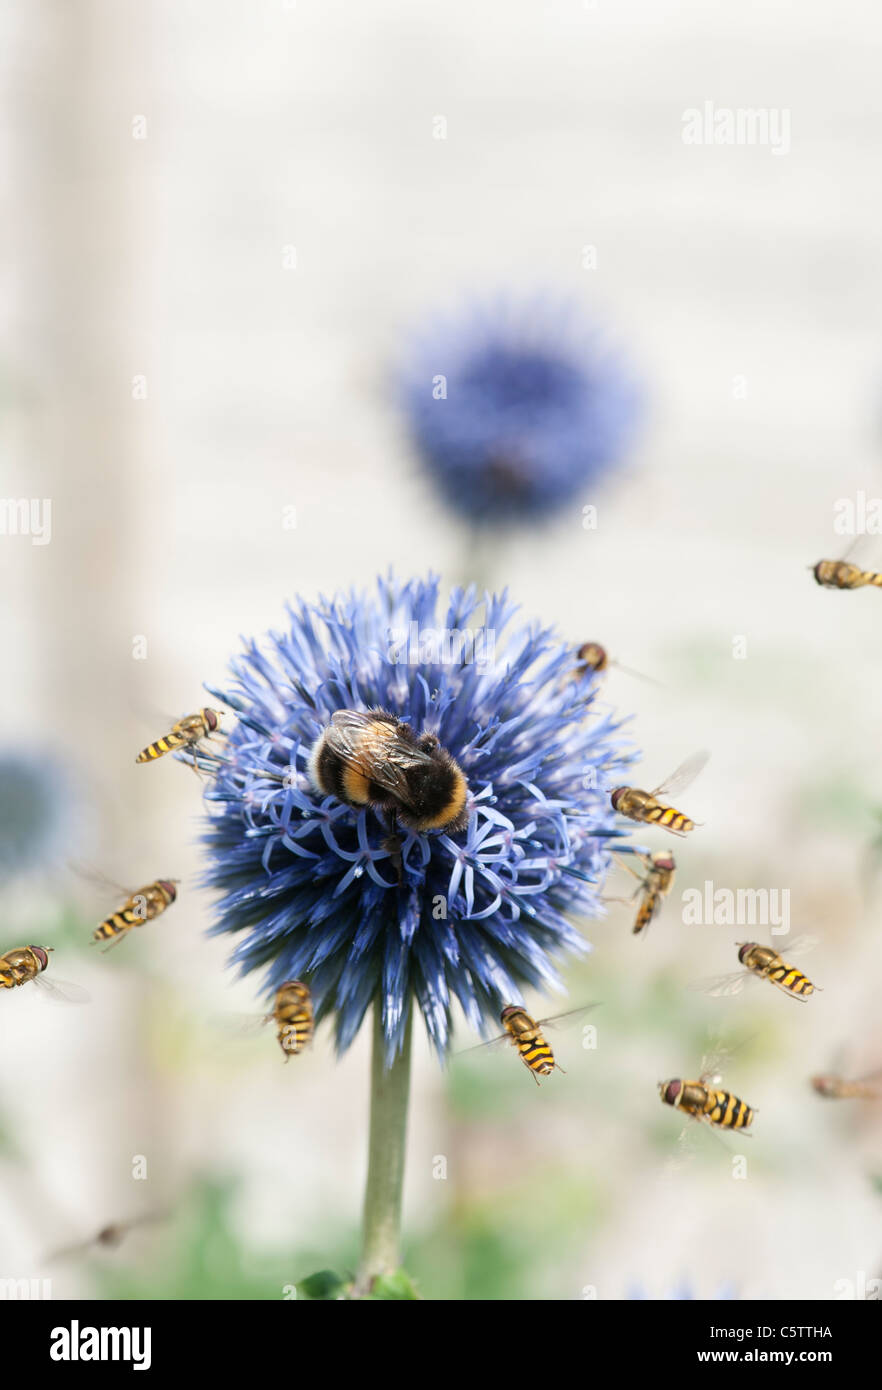 Bumblee and Hoverflies on and around Echinops ritro 'veitchs' (Globe Thistle) flower - Stock Image